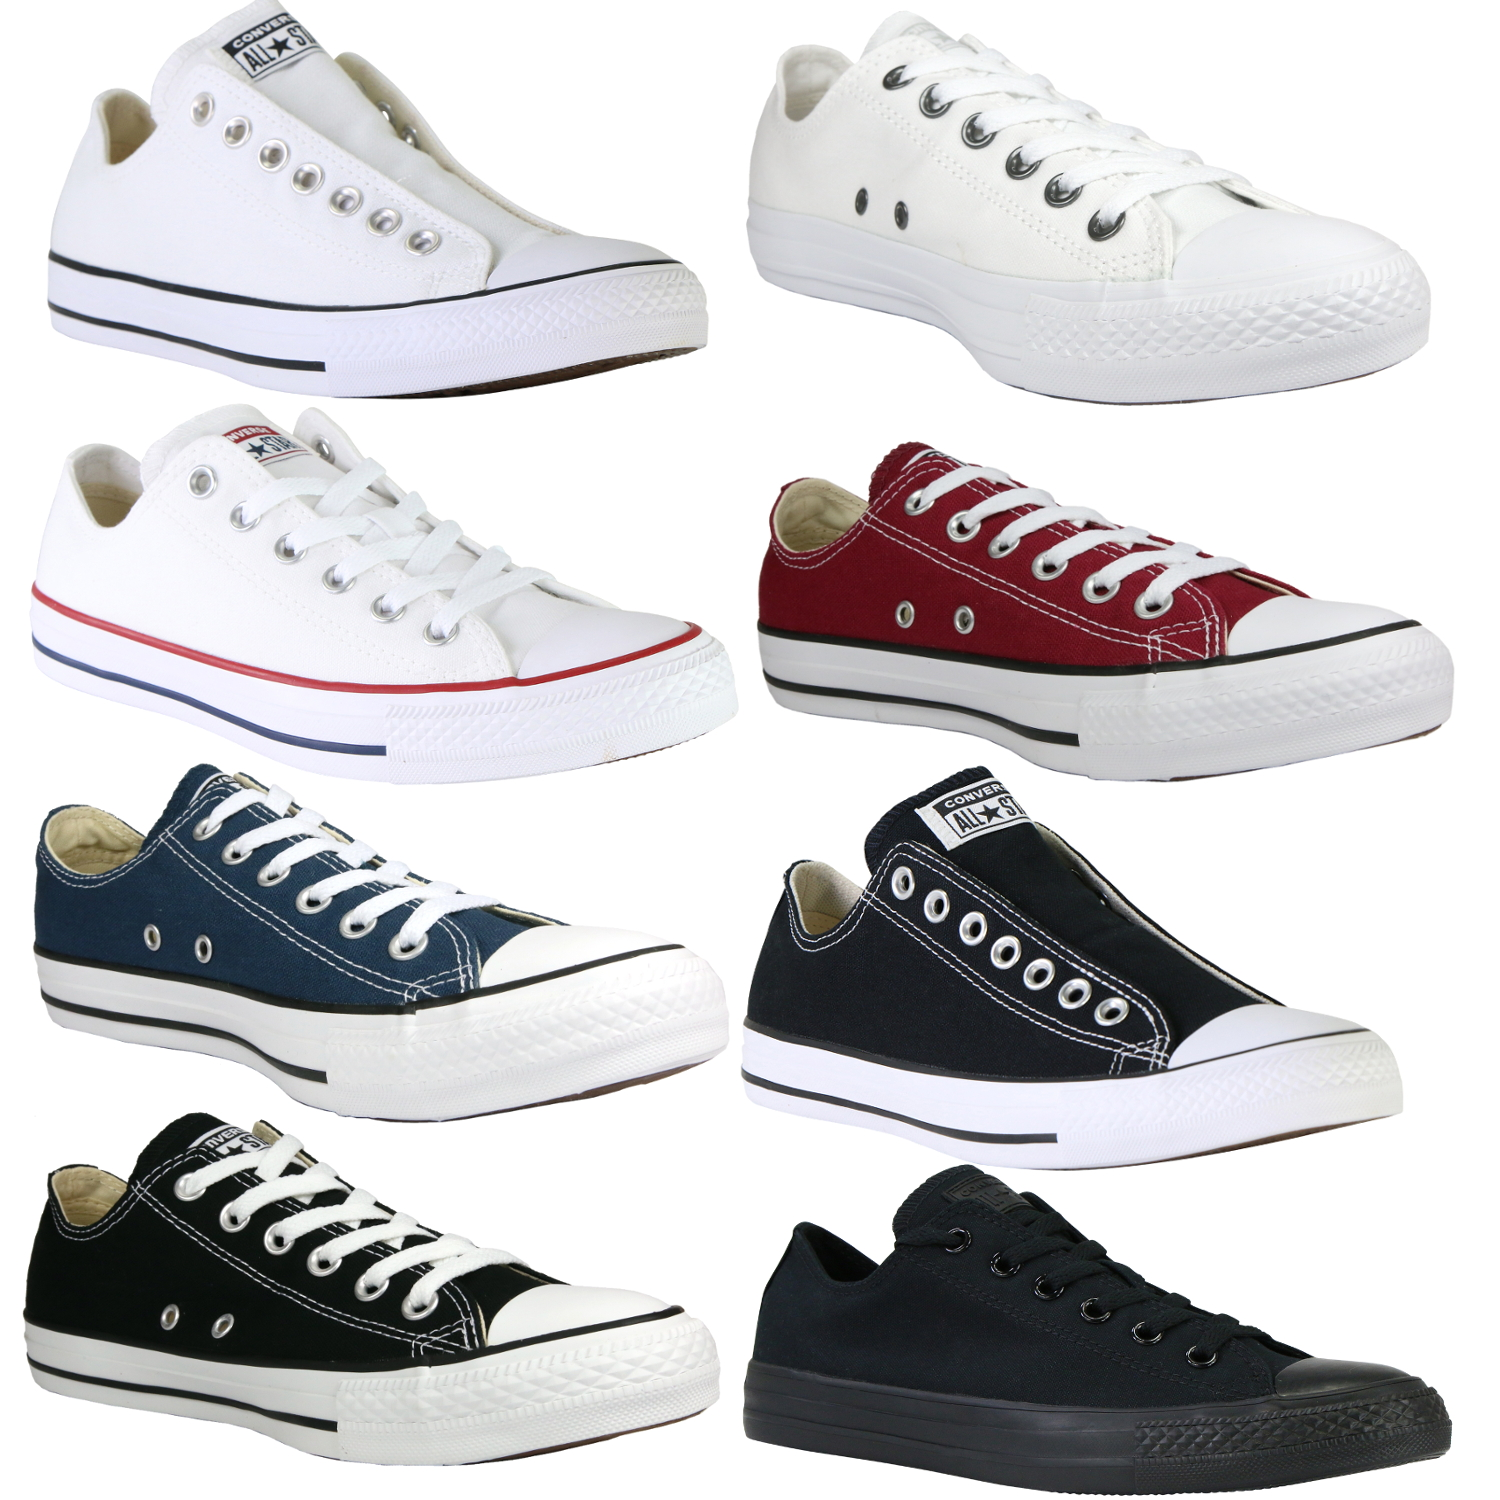 reputable site 89a3c bef68 Details zu Converse Chucks All Star OX Canvas Schuhe Sneaker diverse Farben